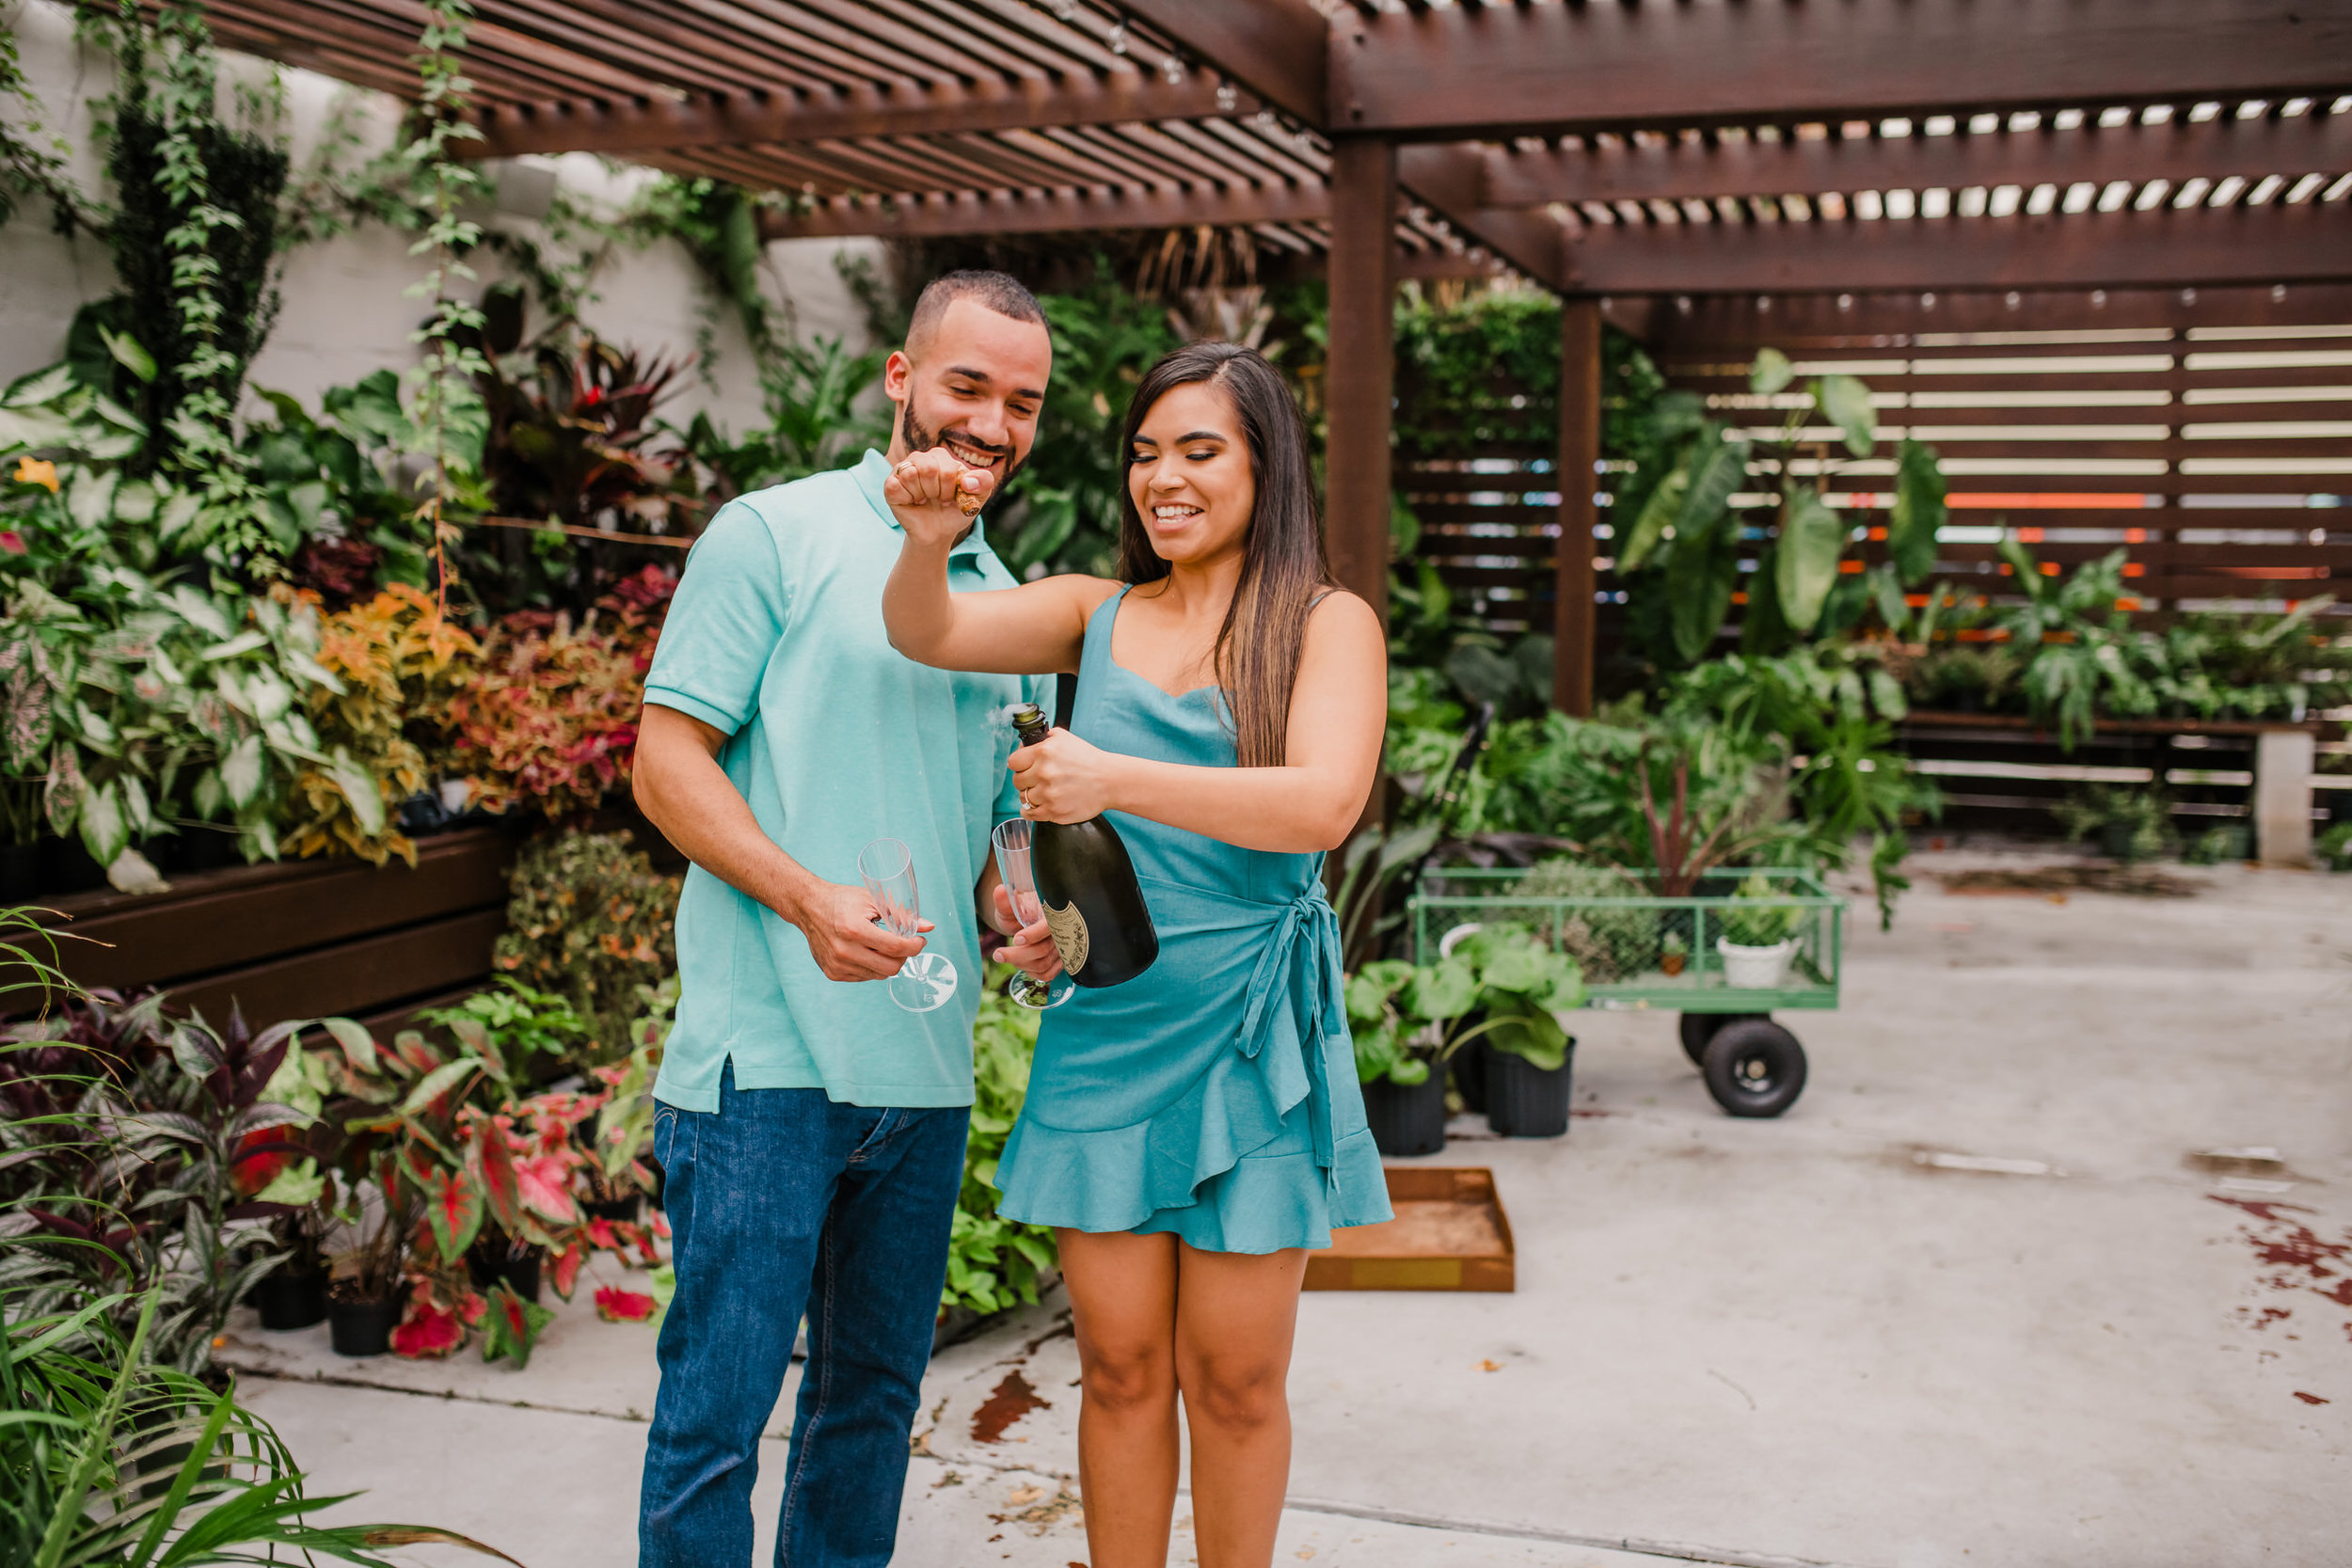 Valeria-Jonathan-Fancy-Free-Nursery-Tampa-Florida-Proposal-265.jpg